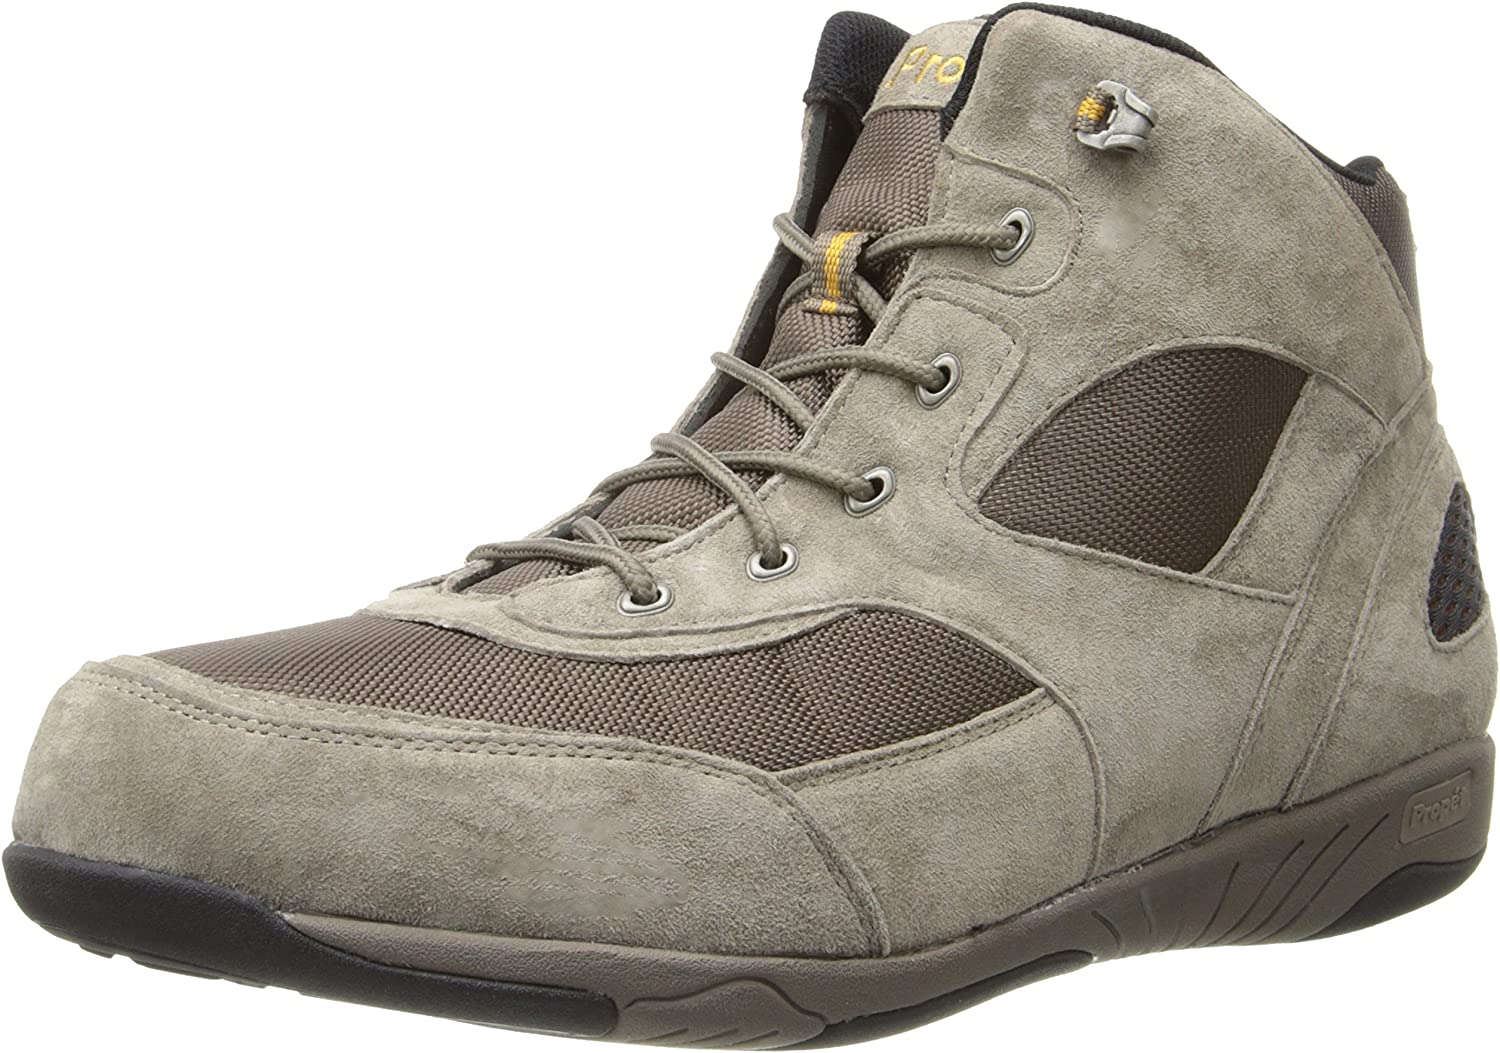 Propet Men's Mack Walking shoes